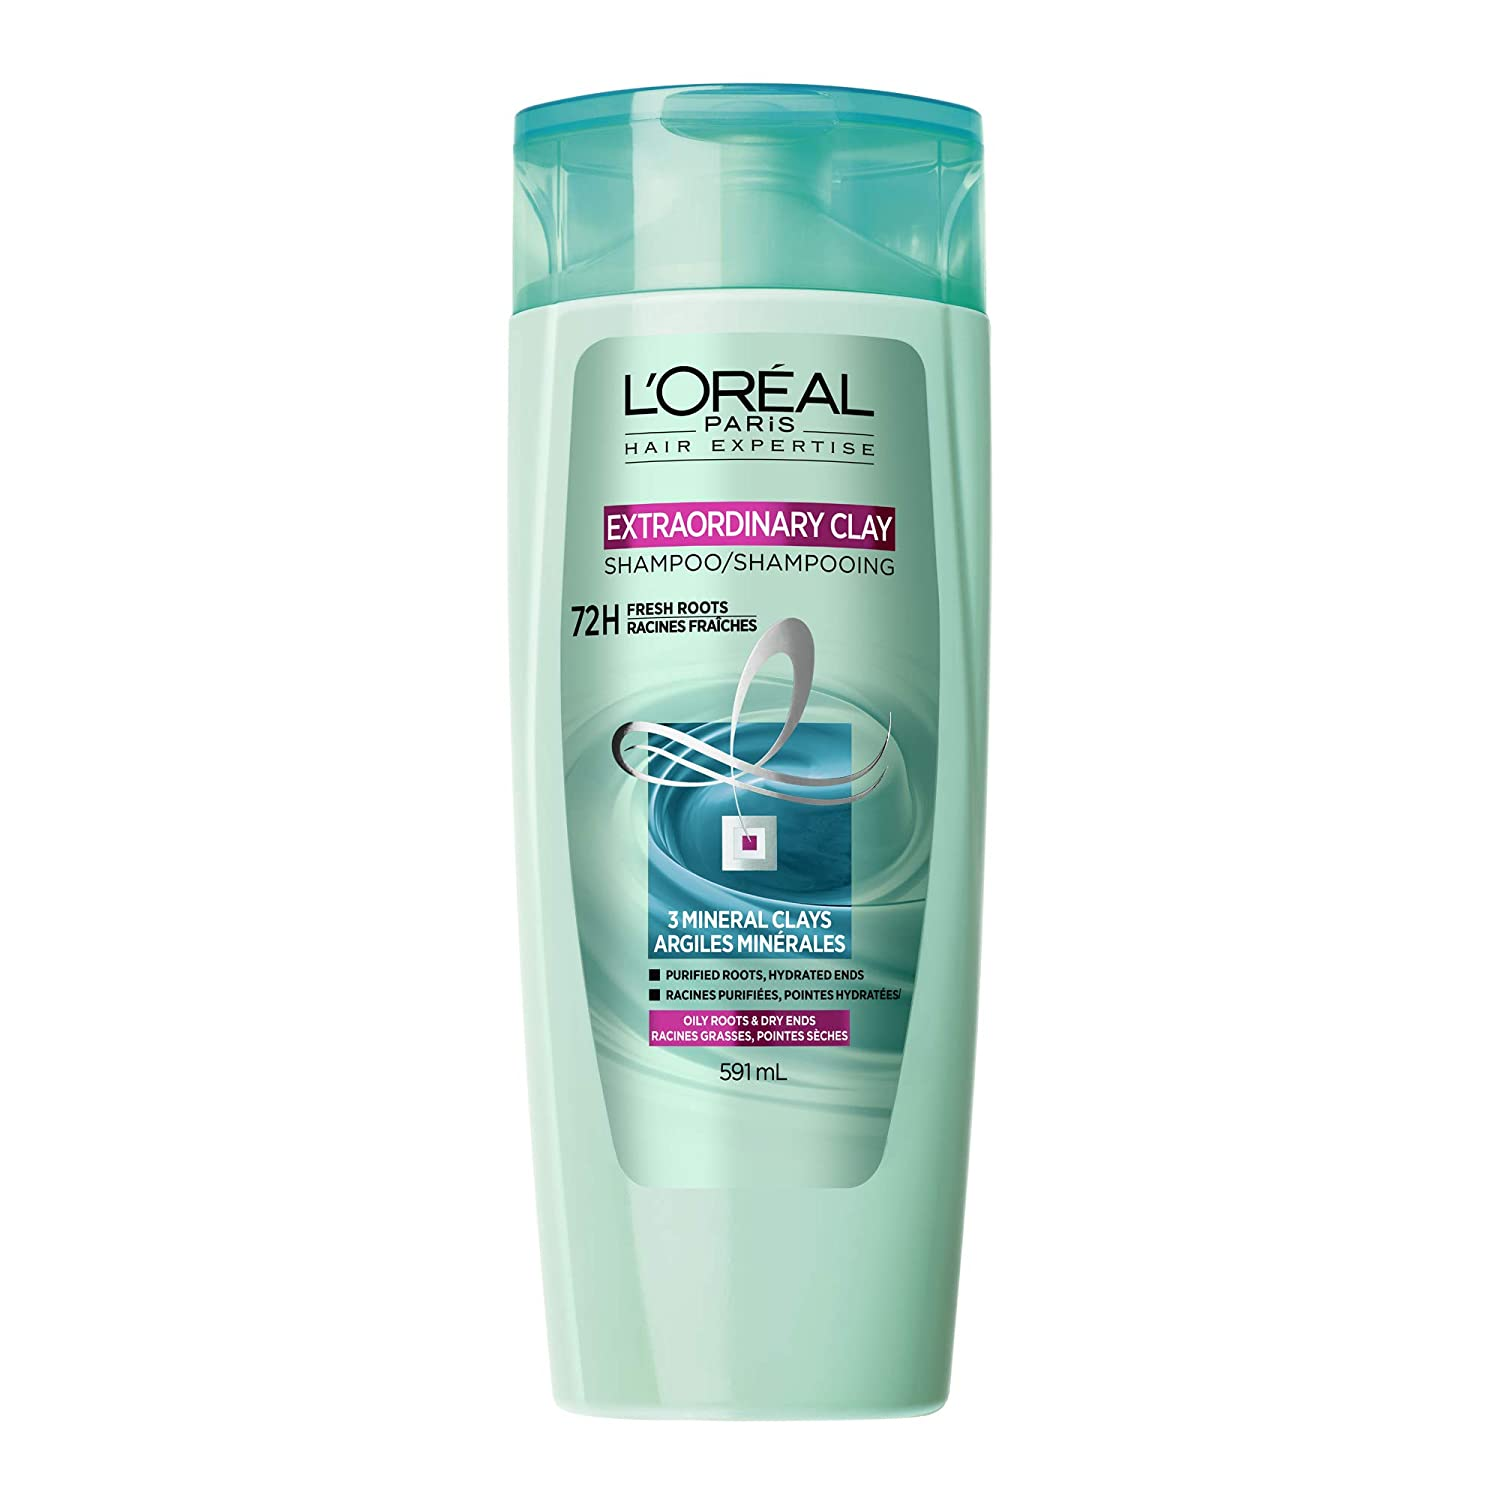 L'Oreal Paris Hair Expertise Extraordinary Clay Dry Shampoo Instant Refresh, 150 mL L'Oreal Paris